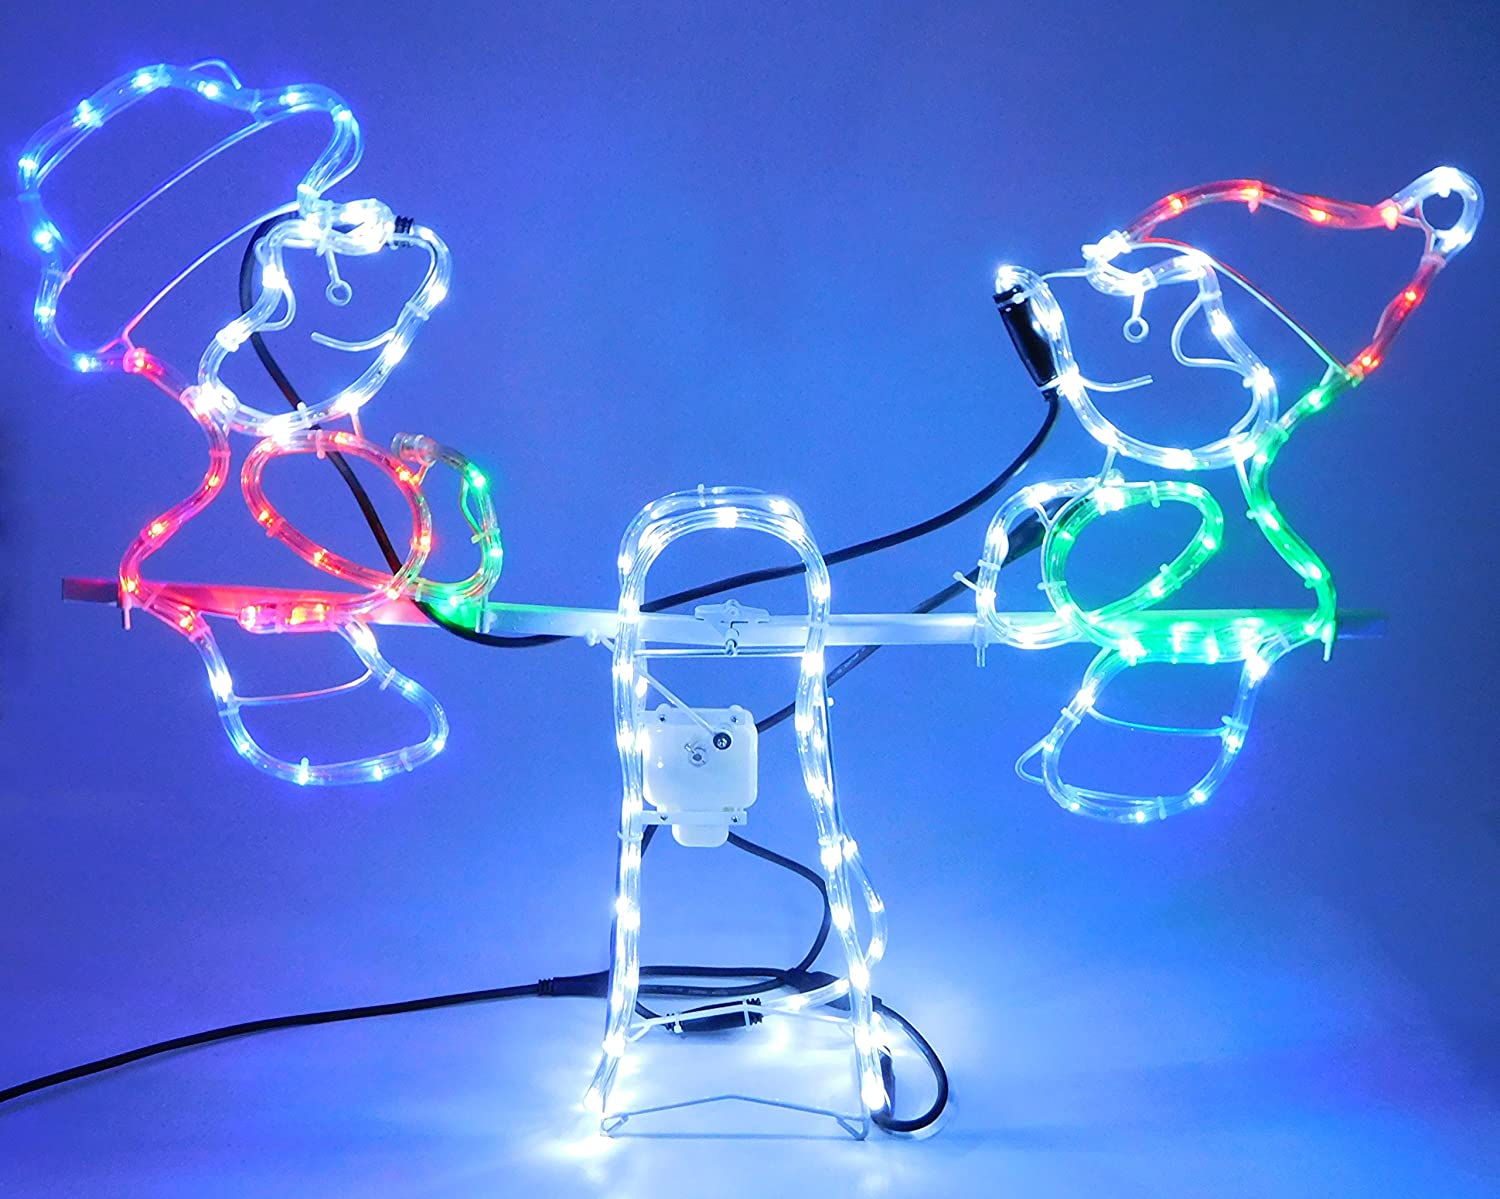 Christmas Decorations 80cm x 12cm x 63cm Christmas Concepts® Rope Light Snowman and Elf animated Seesaw